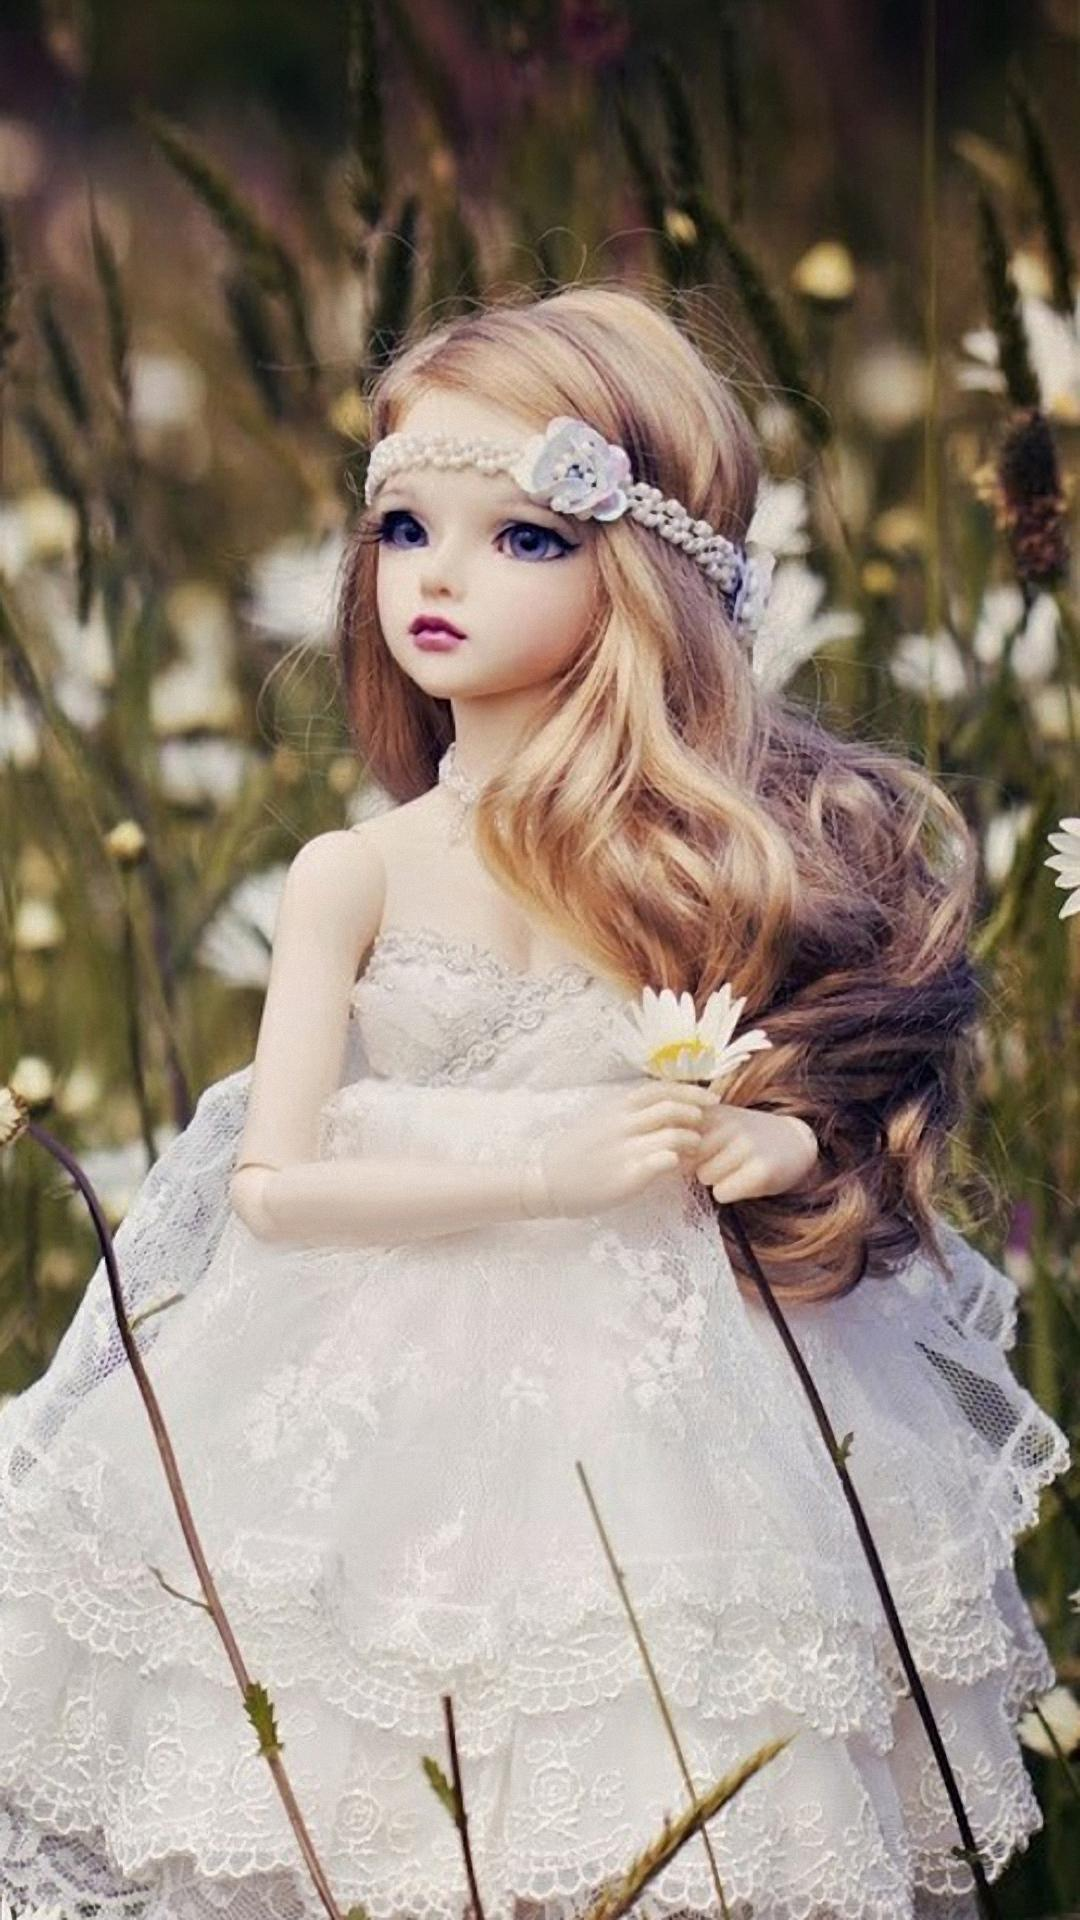 Baby Doll Hd Wallpaper For Android Apk Download